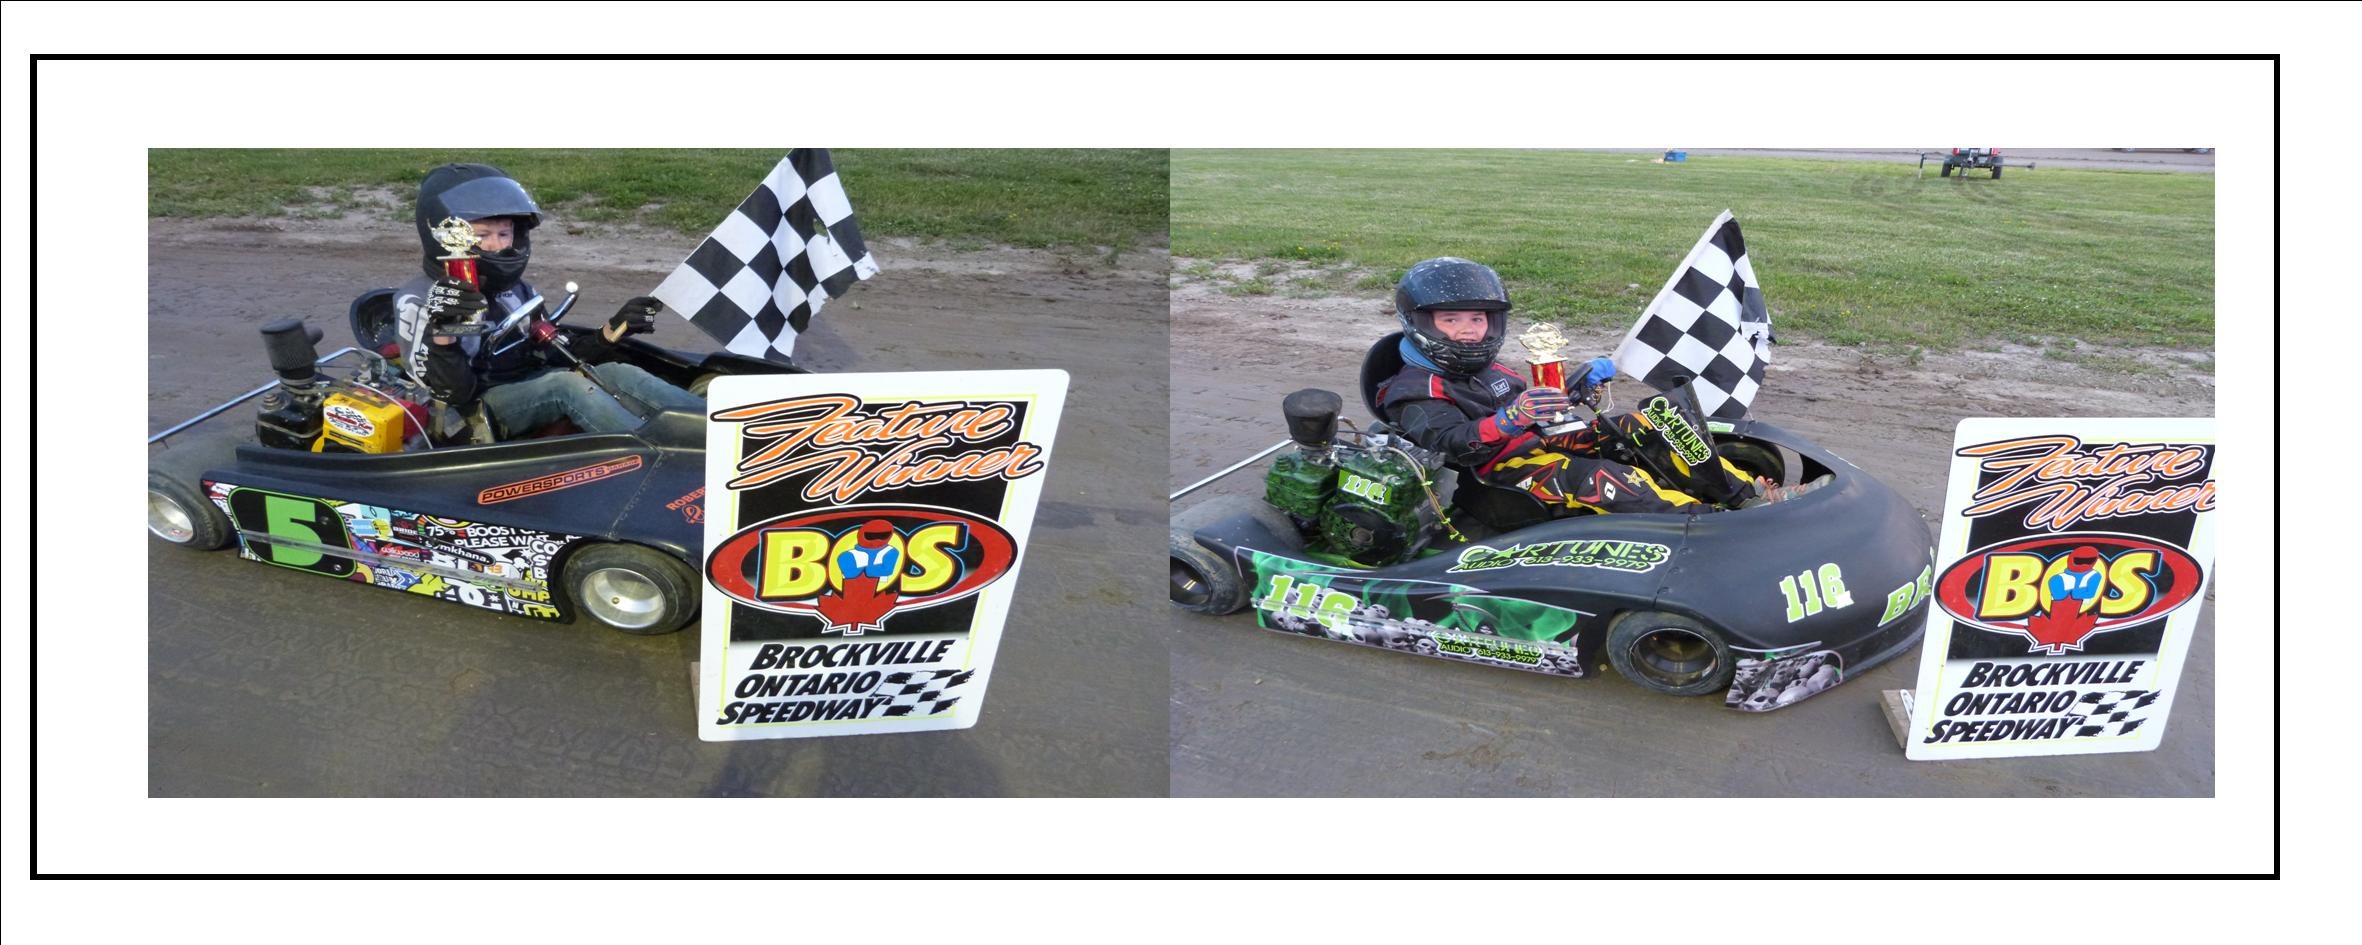 6 DRIVERS WIN BACK TO BACK WHILE D'ALESSIO AND FREDERICKS SCORE 1ST WINS OF 2016 ON THE KART TRACK AT BROCKVILLE